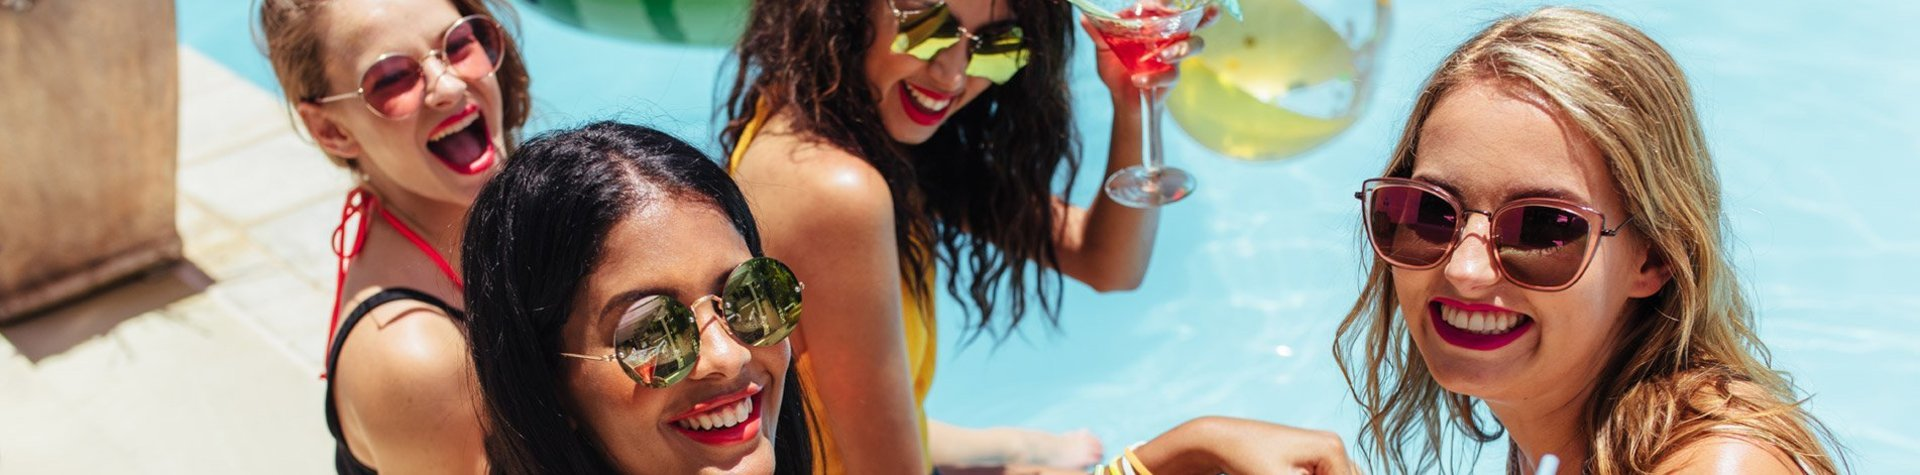 girls drinking cocktails in pool